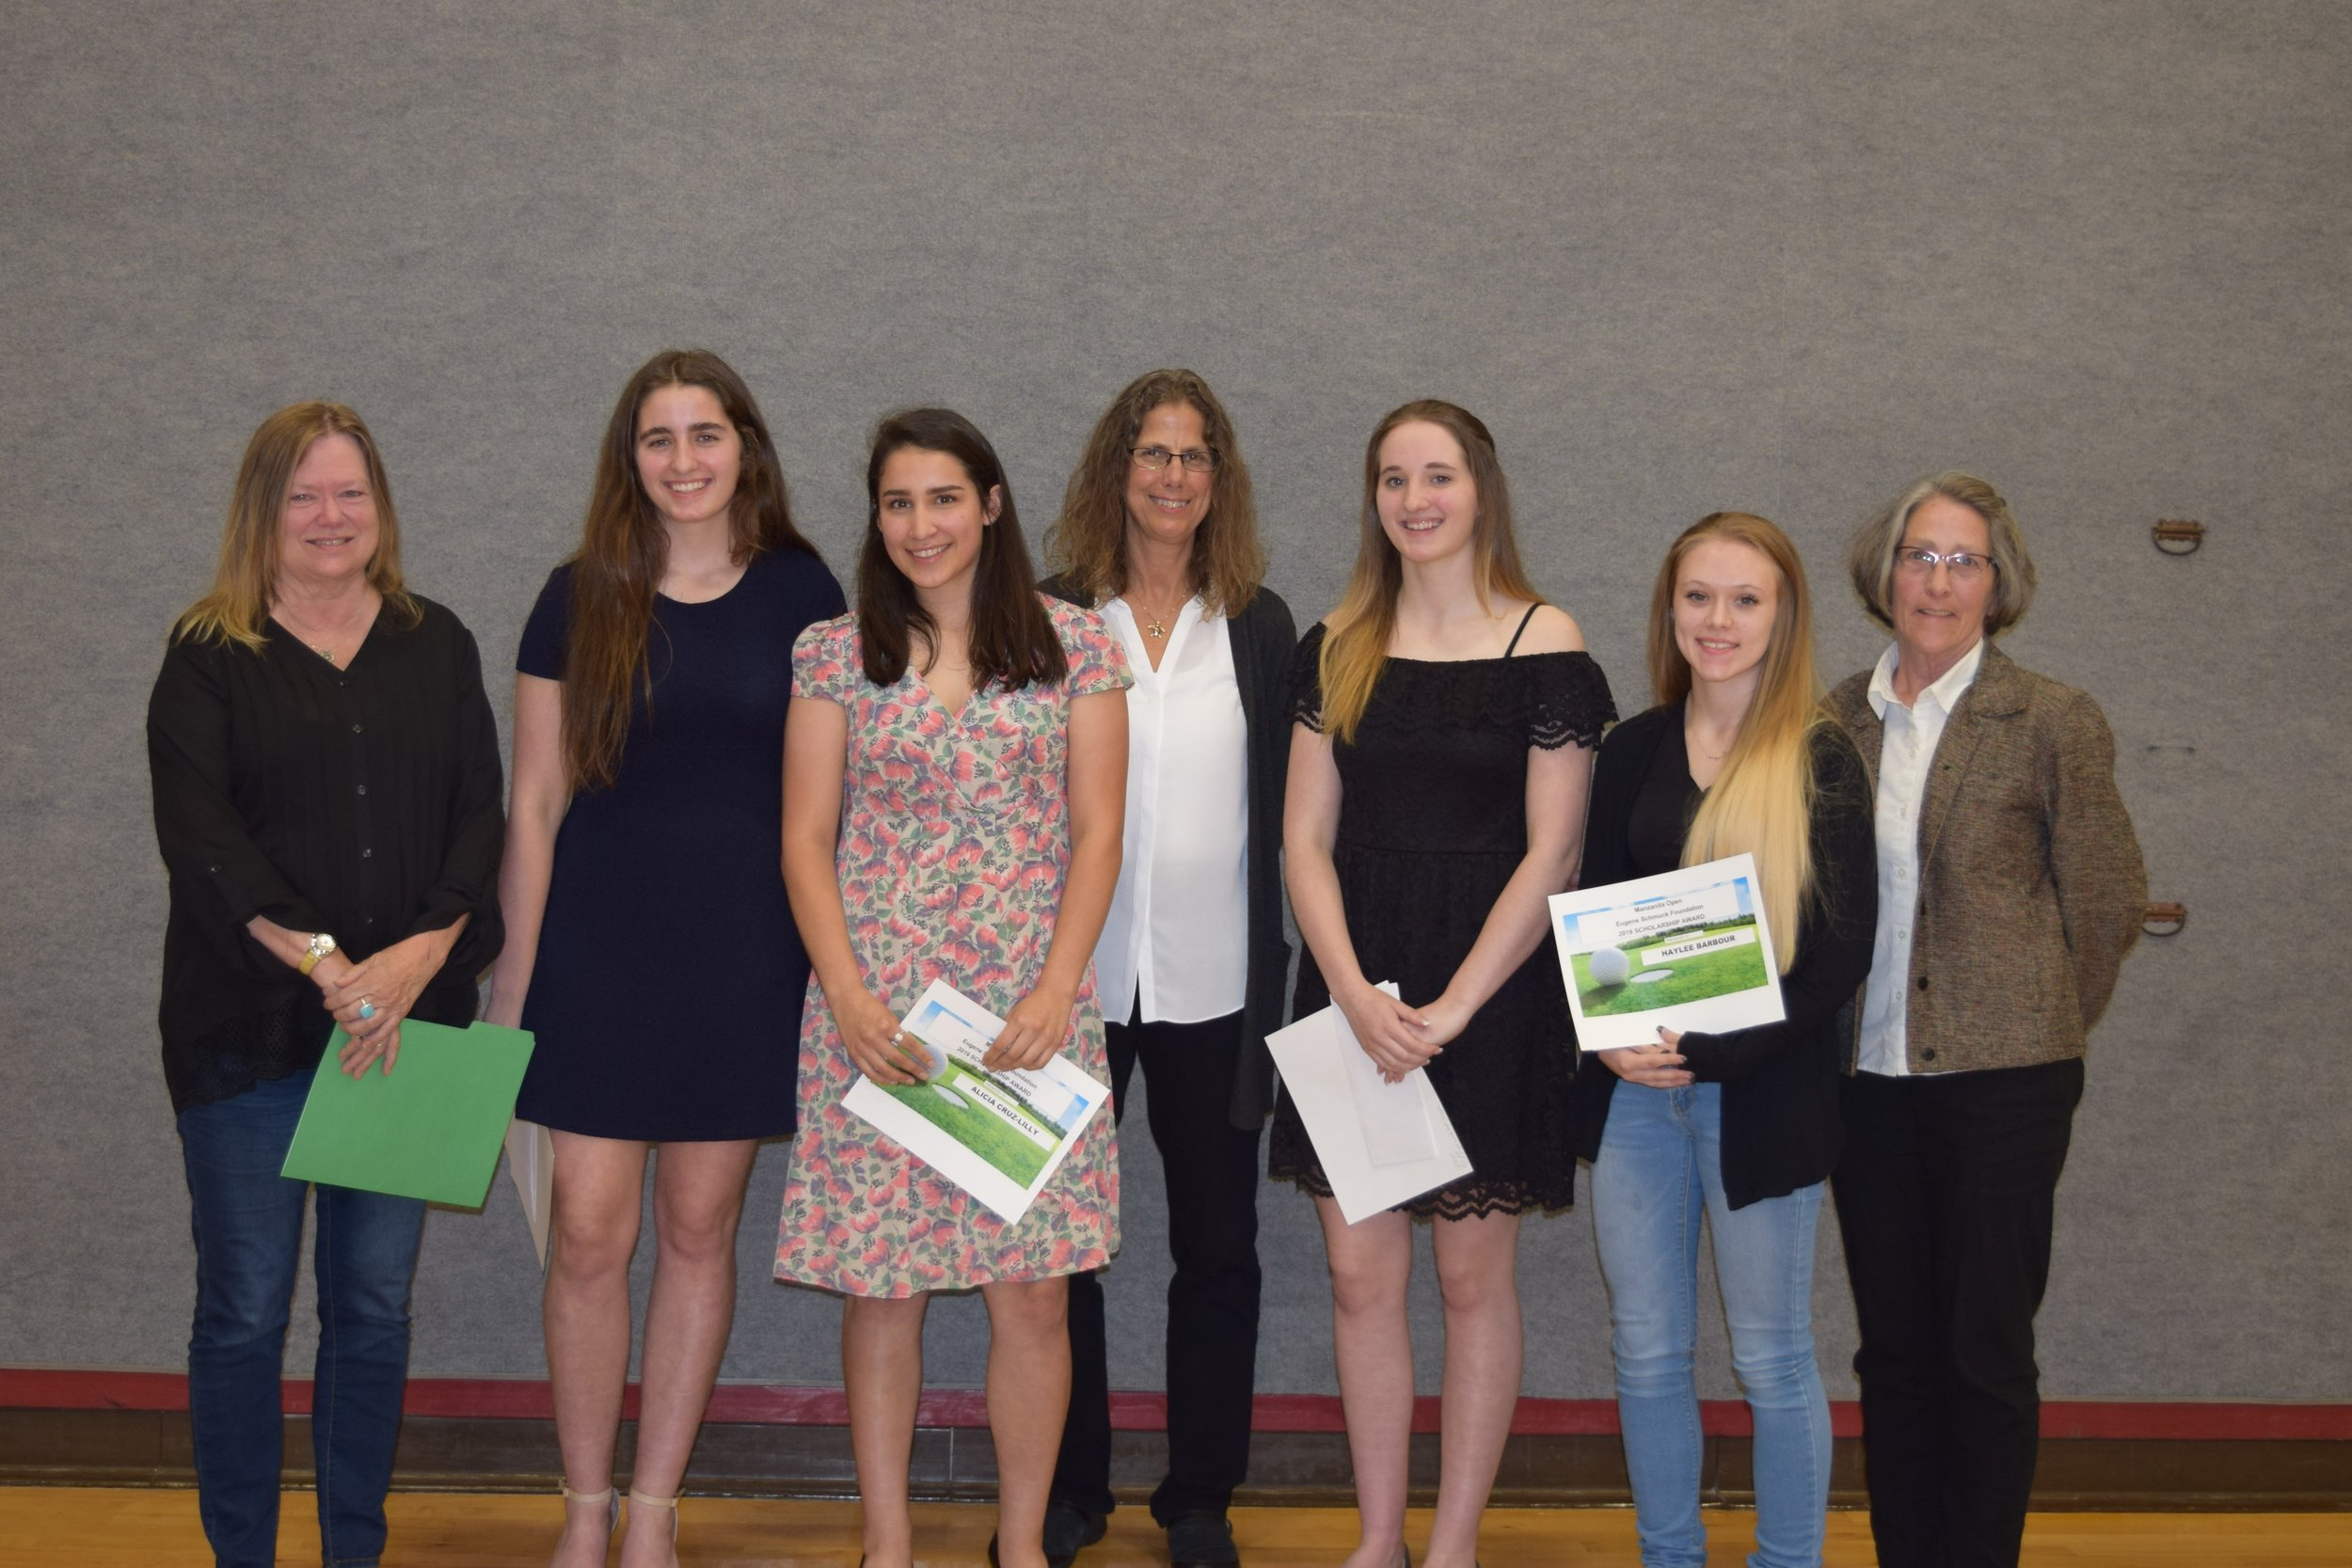 Awards Night at Neah-Kah-Nie High School  Left to right: Connie VanderWaal (Board member}, Alexandria Woodward, Alicia Cruz-Lilly, Beth Gienger (Board member), Brianna Woodward, Haylee Barbour, Sally Vanebo (Board member).